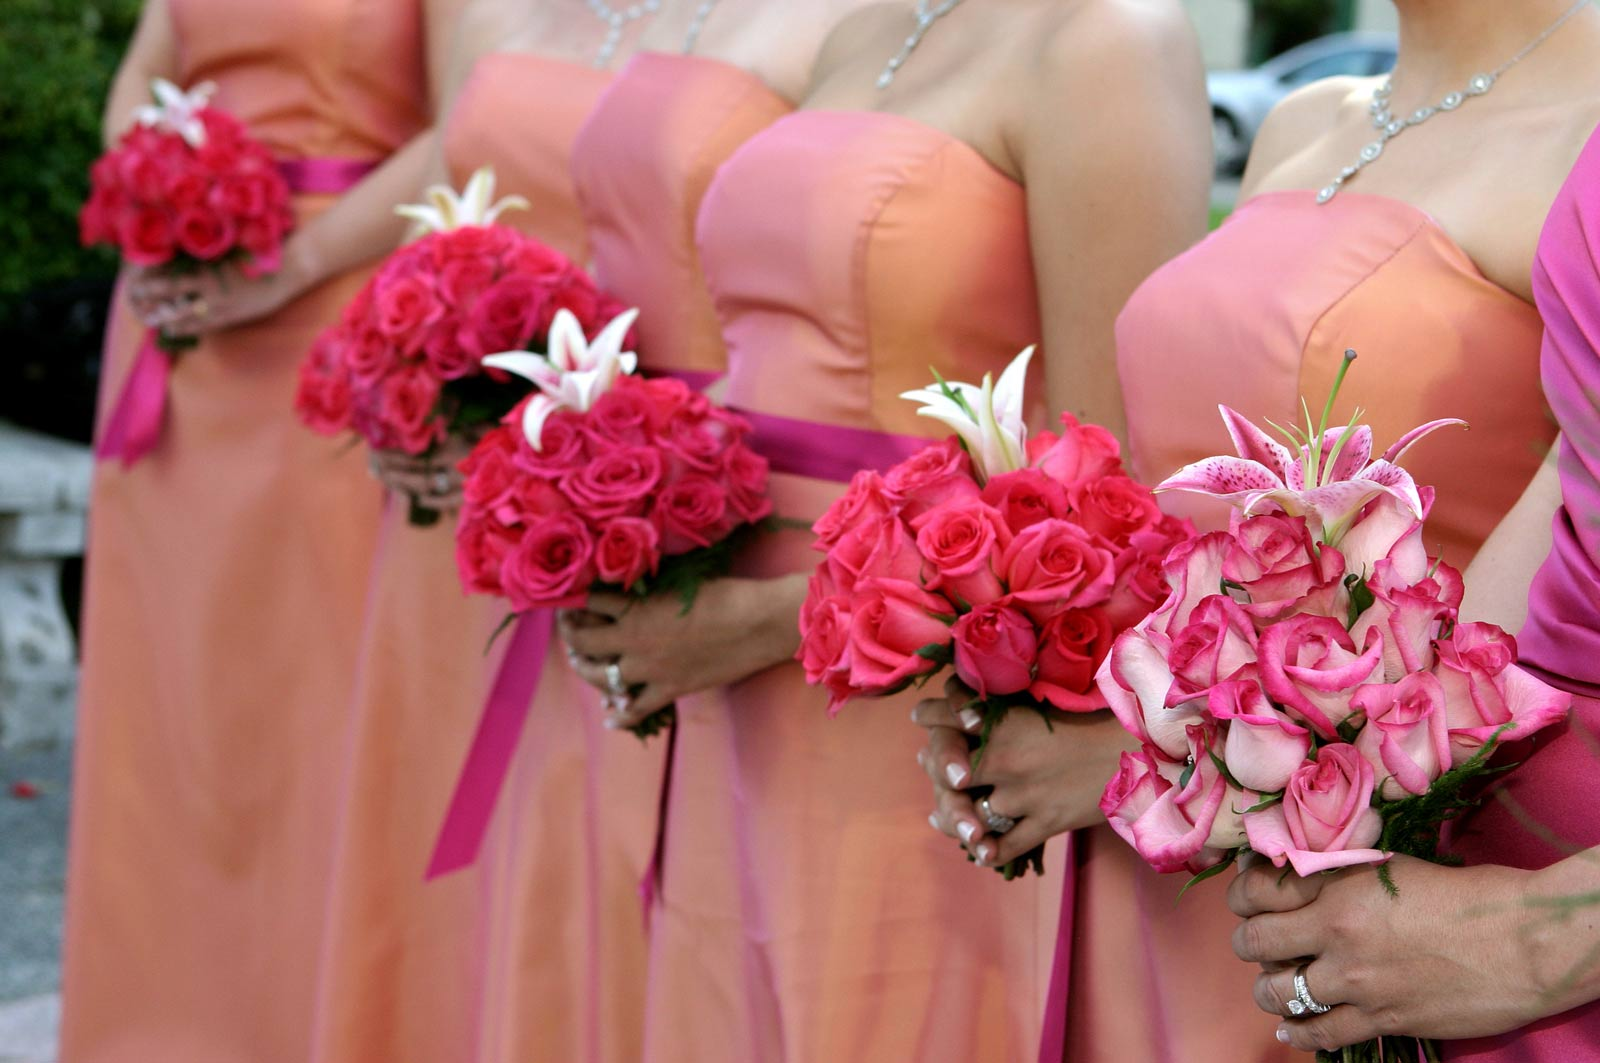 Bridesmaids in Pink with Flowers - Photo By J. Garcia